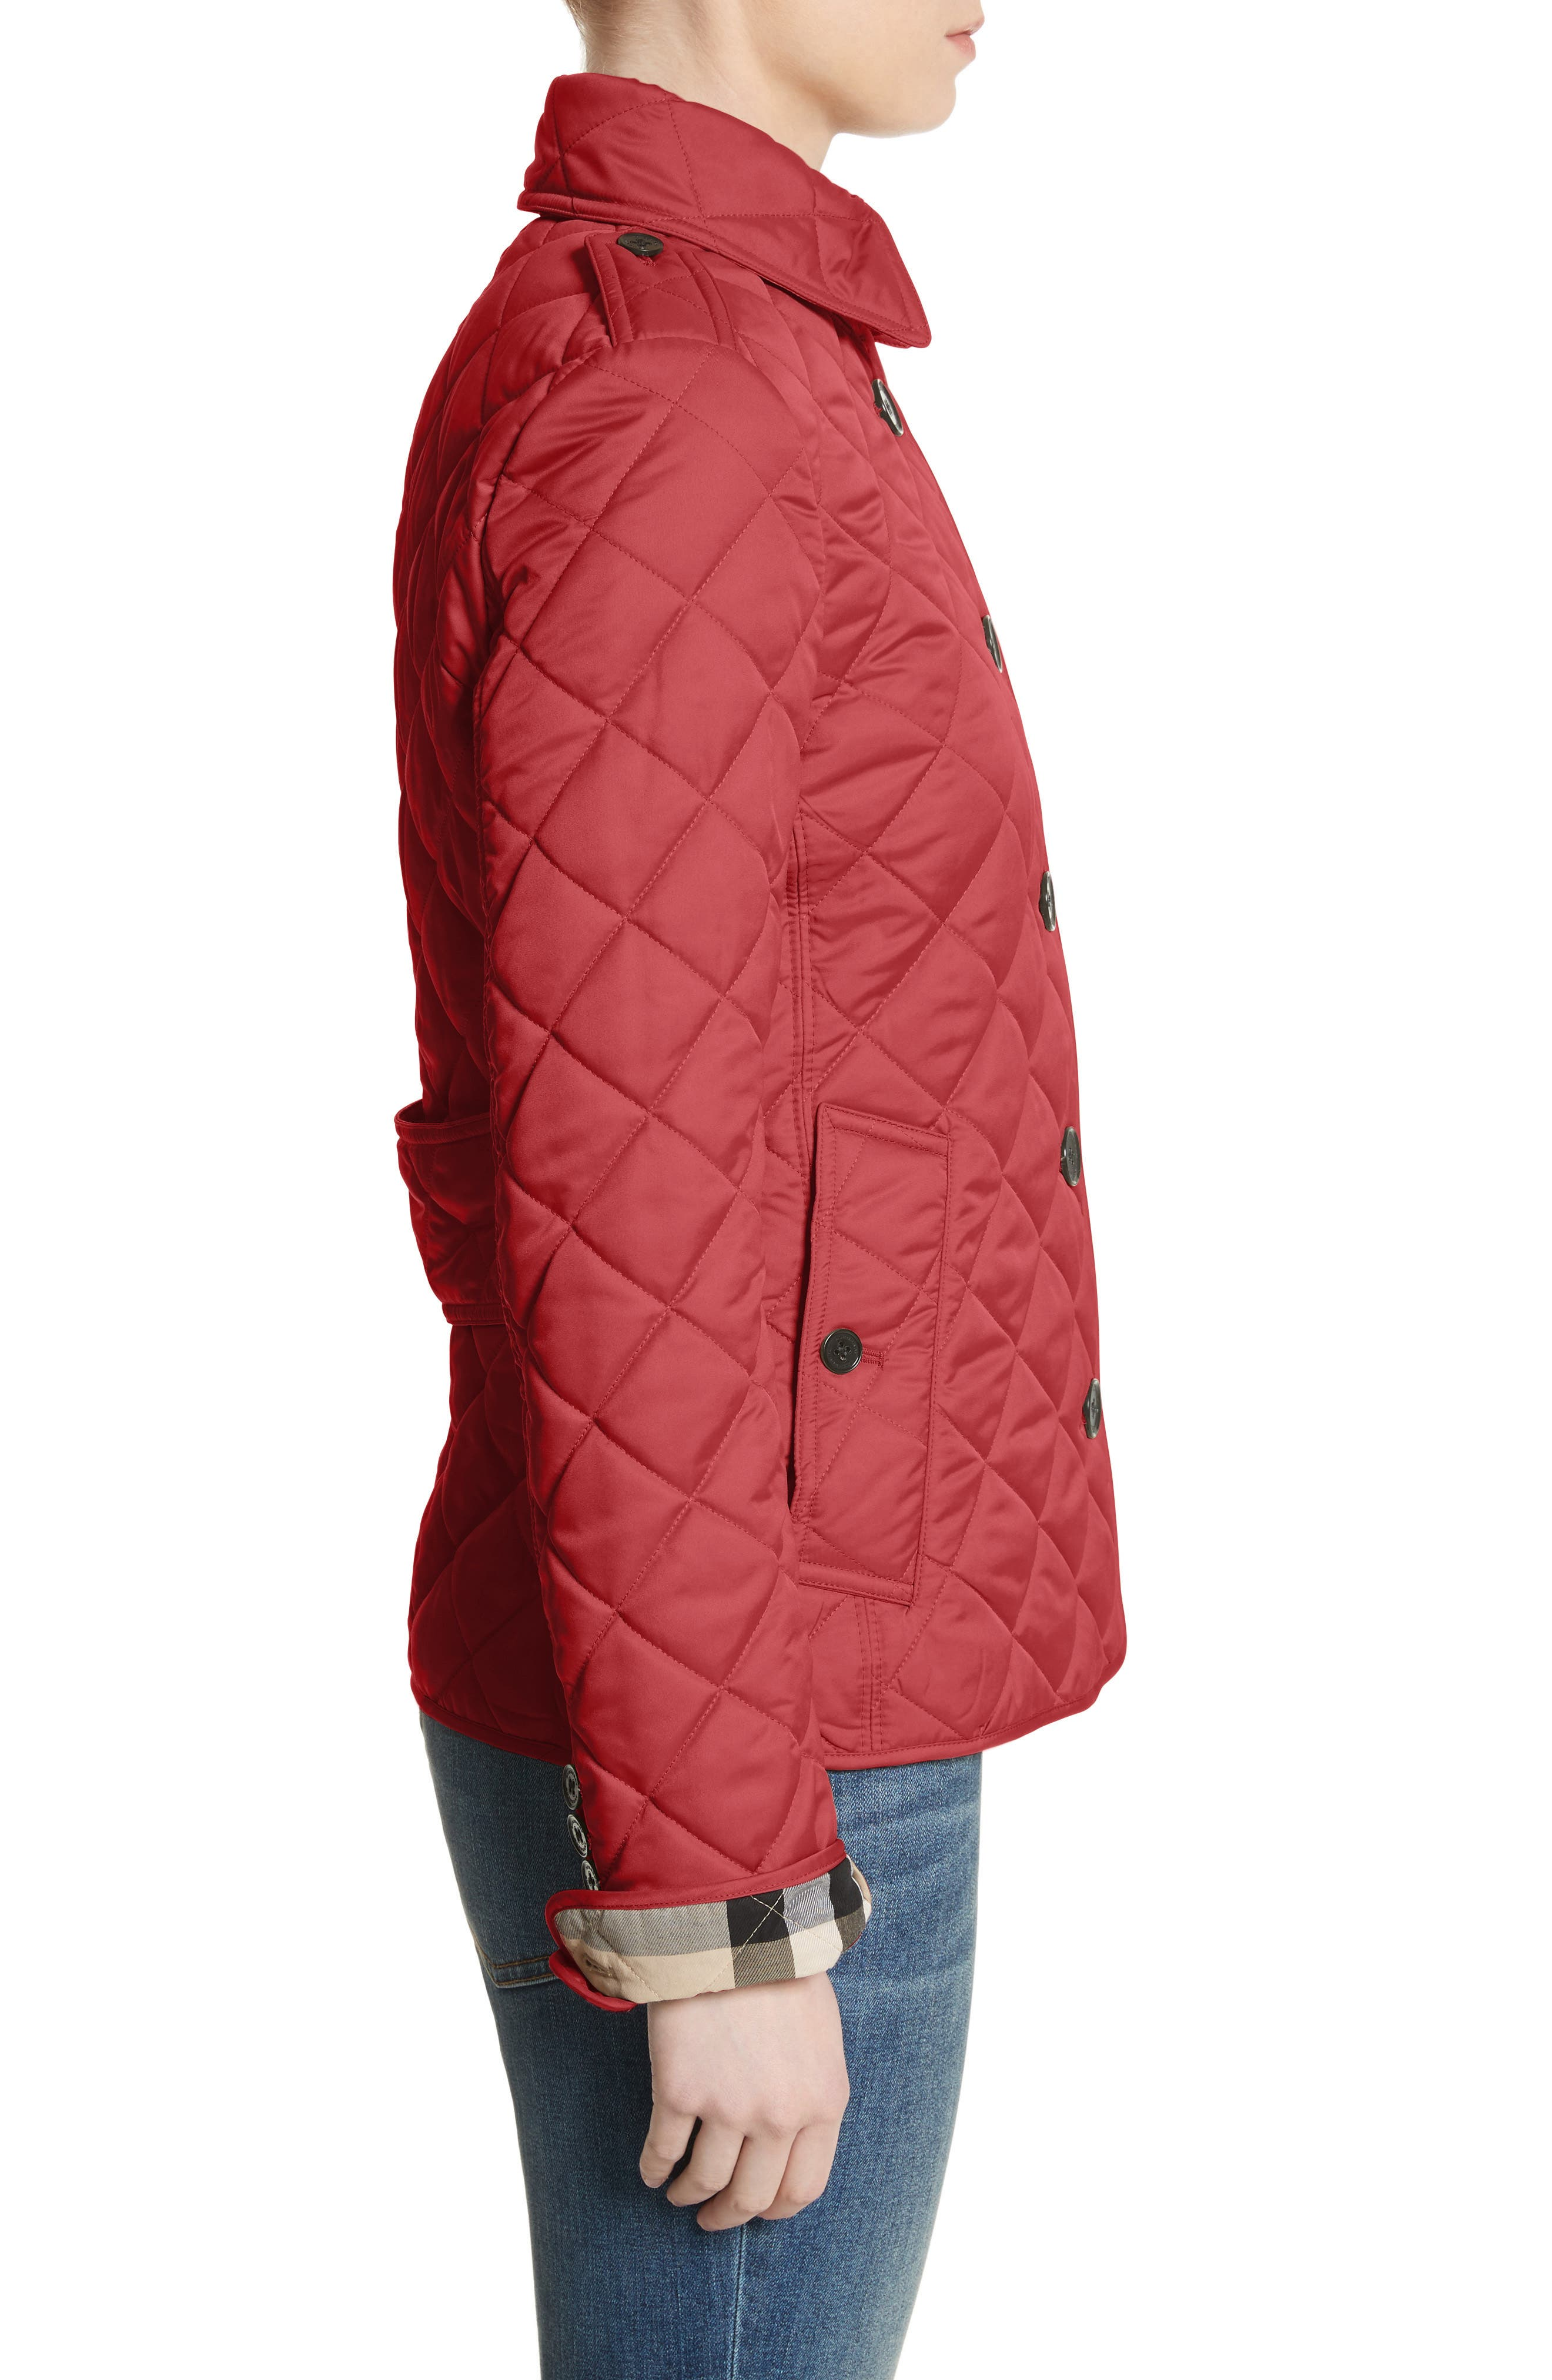 Frankby Quilted Jacket,                             Alternate thumbnail 3, color,                             PARADE RED